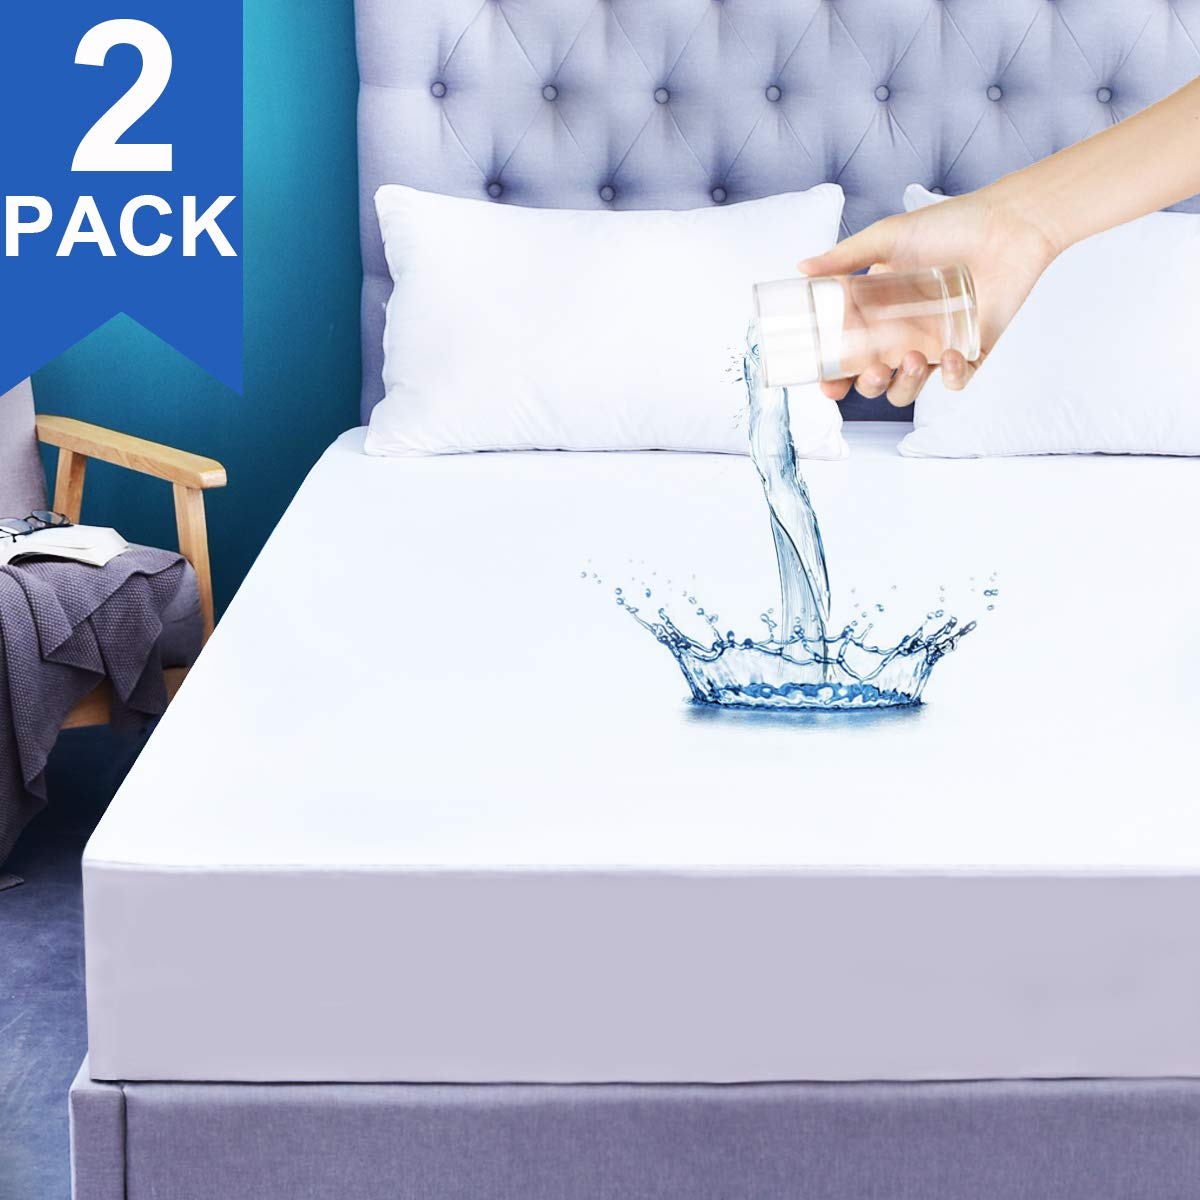 2-Pack Full Size Waterproof Mattress Protector Fitted Bed Cover 14 Deep Breathable Mattress Cover